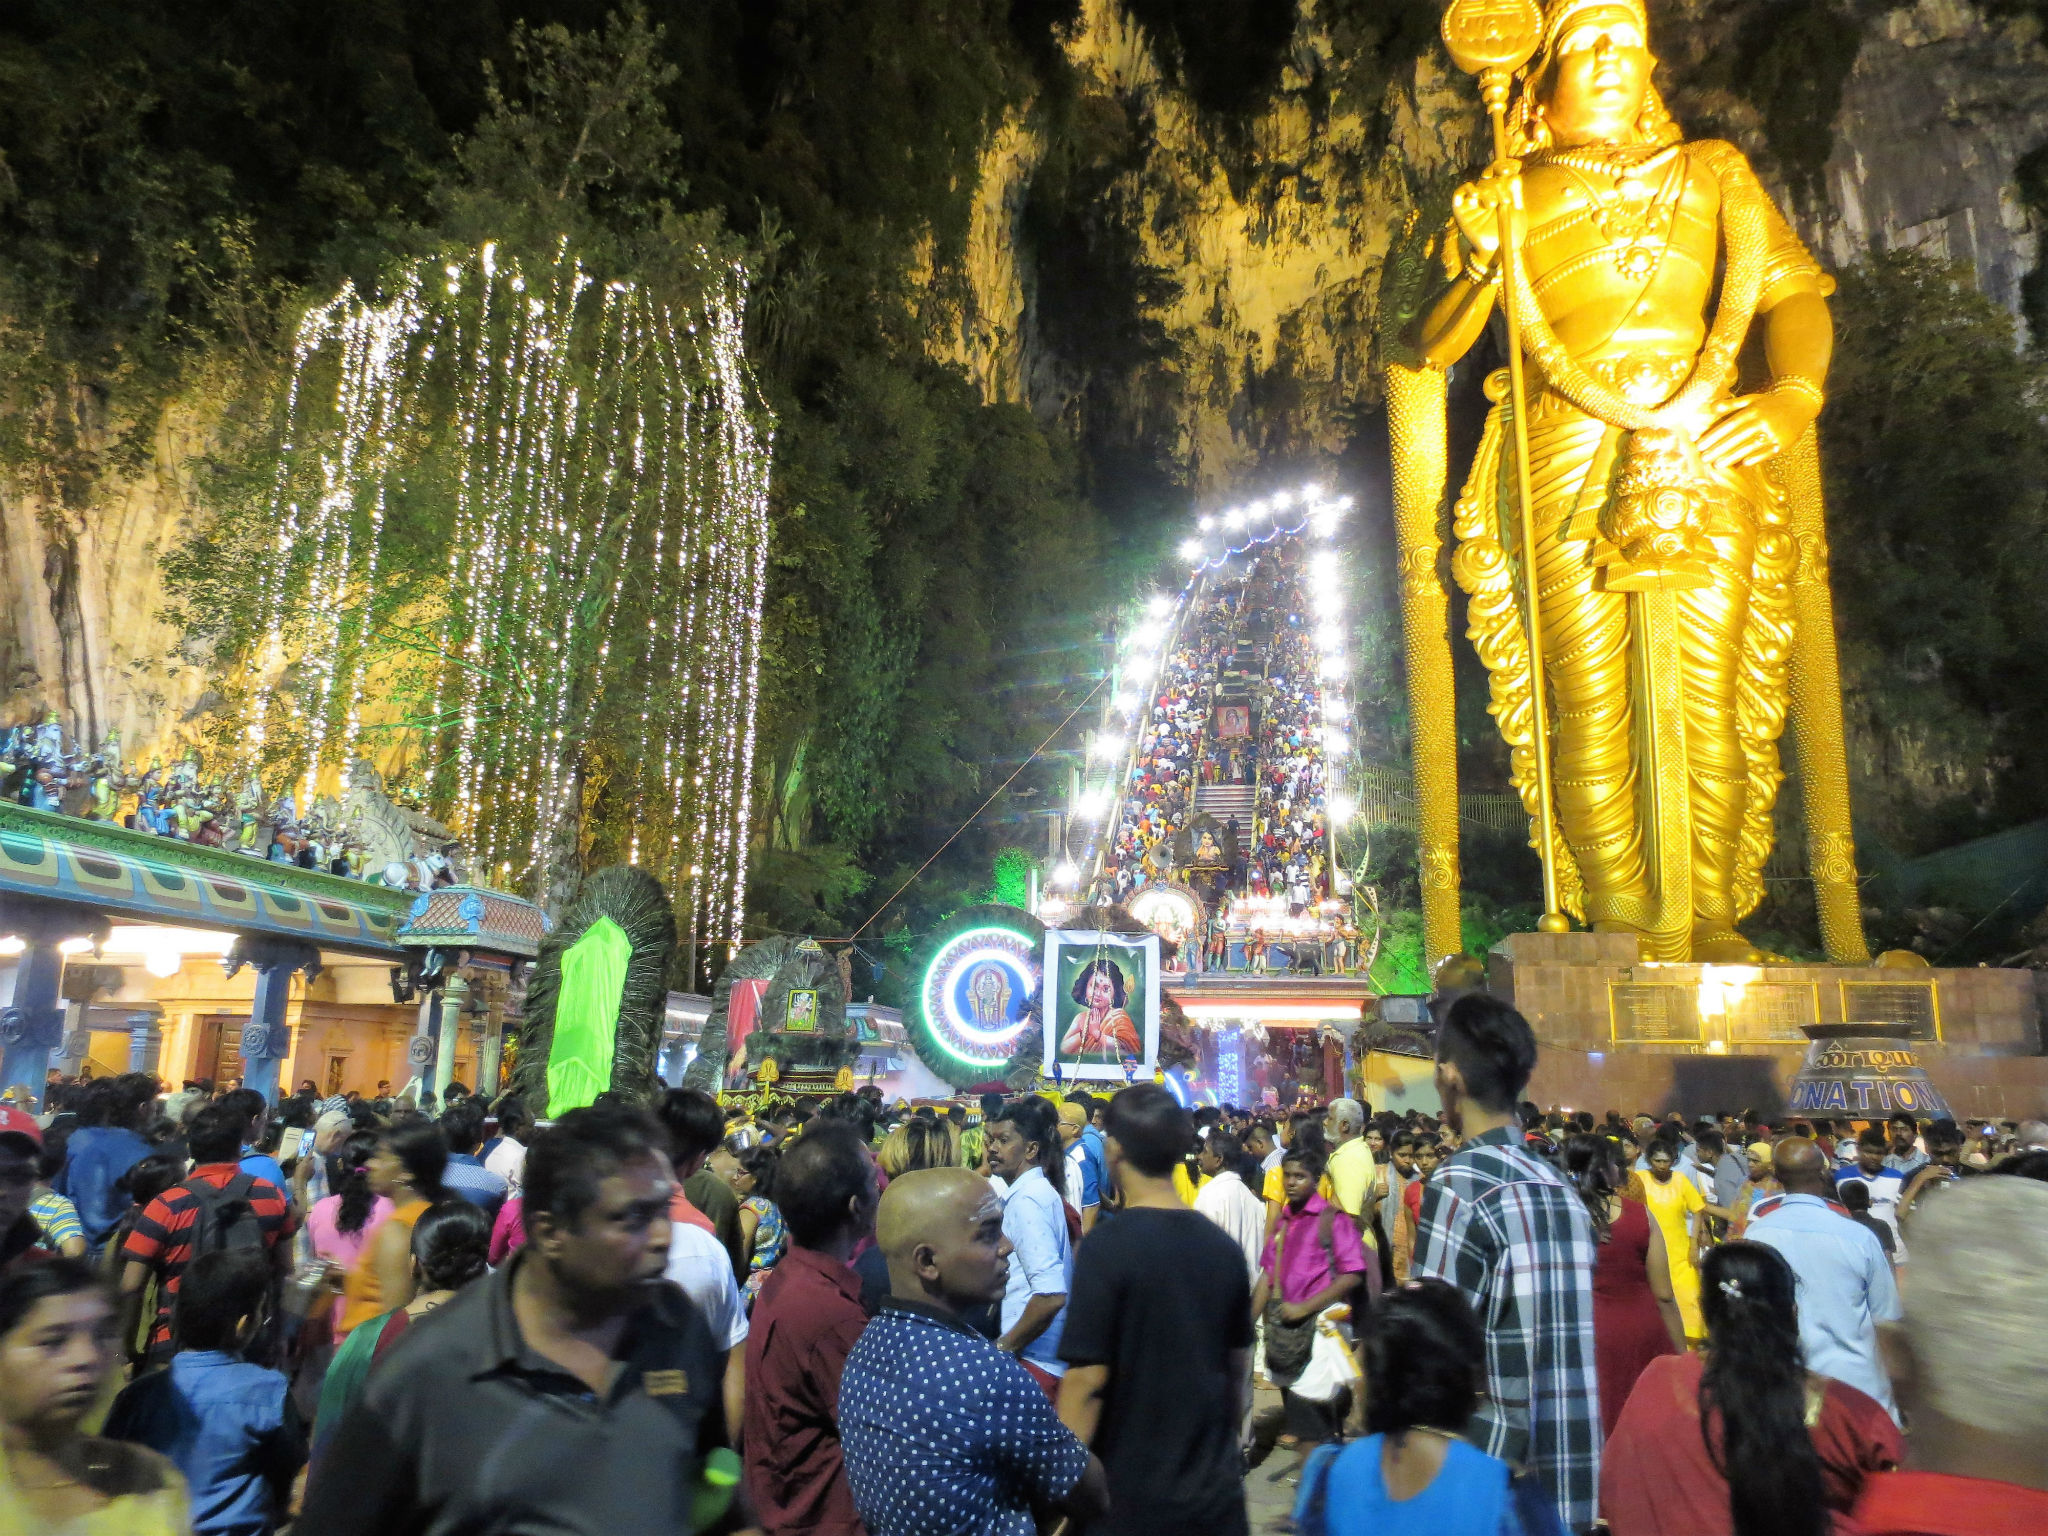 Lord Murugan statue inside Batu Caves